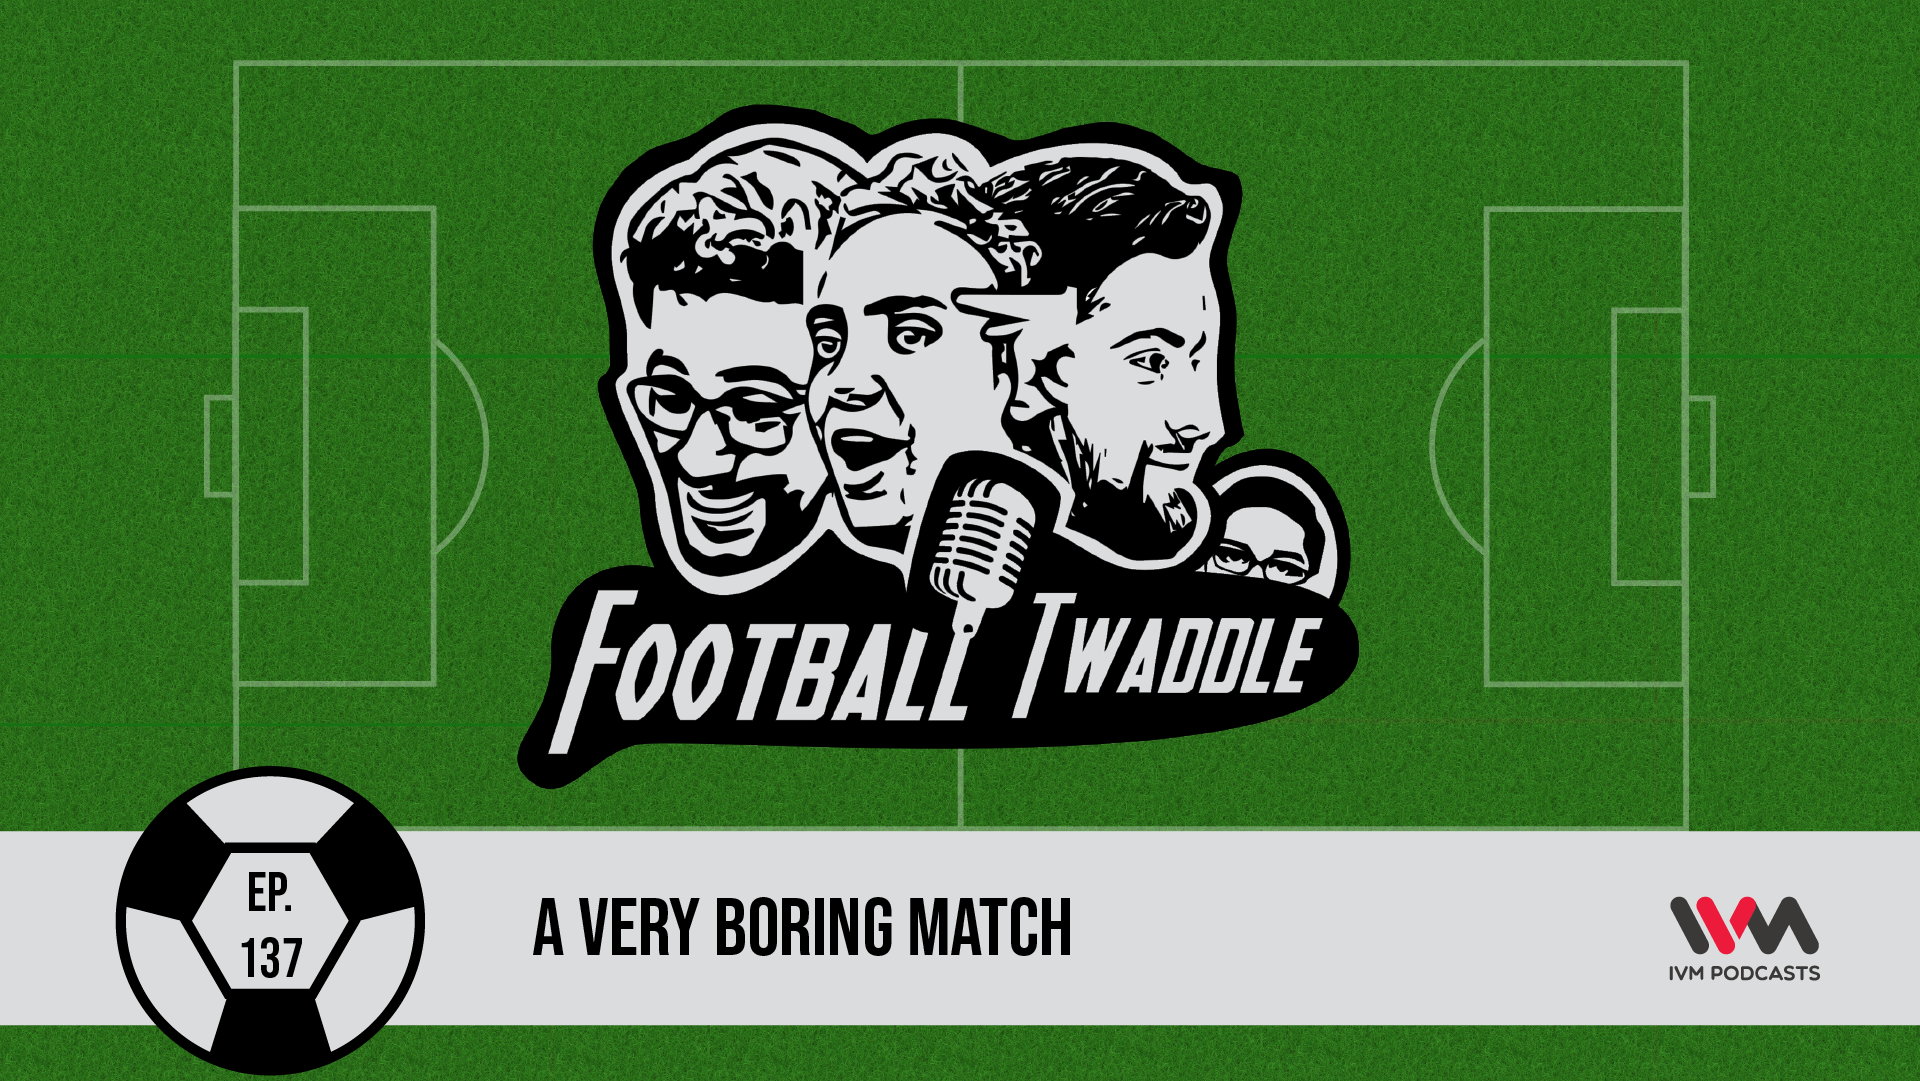 FootballTwaddleEpisode137.png